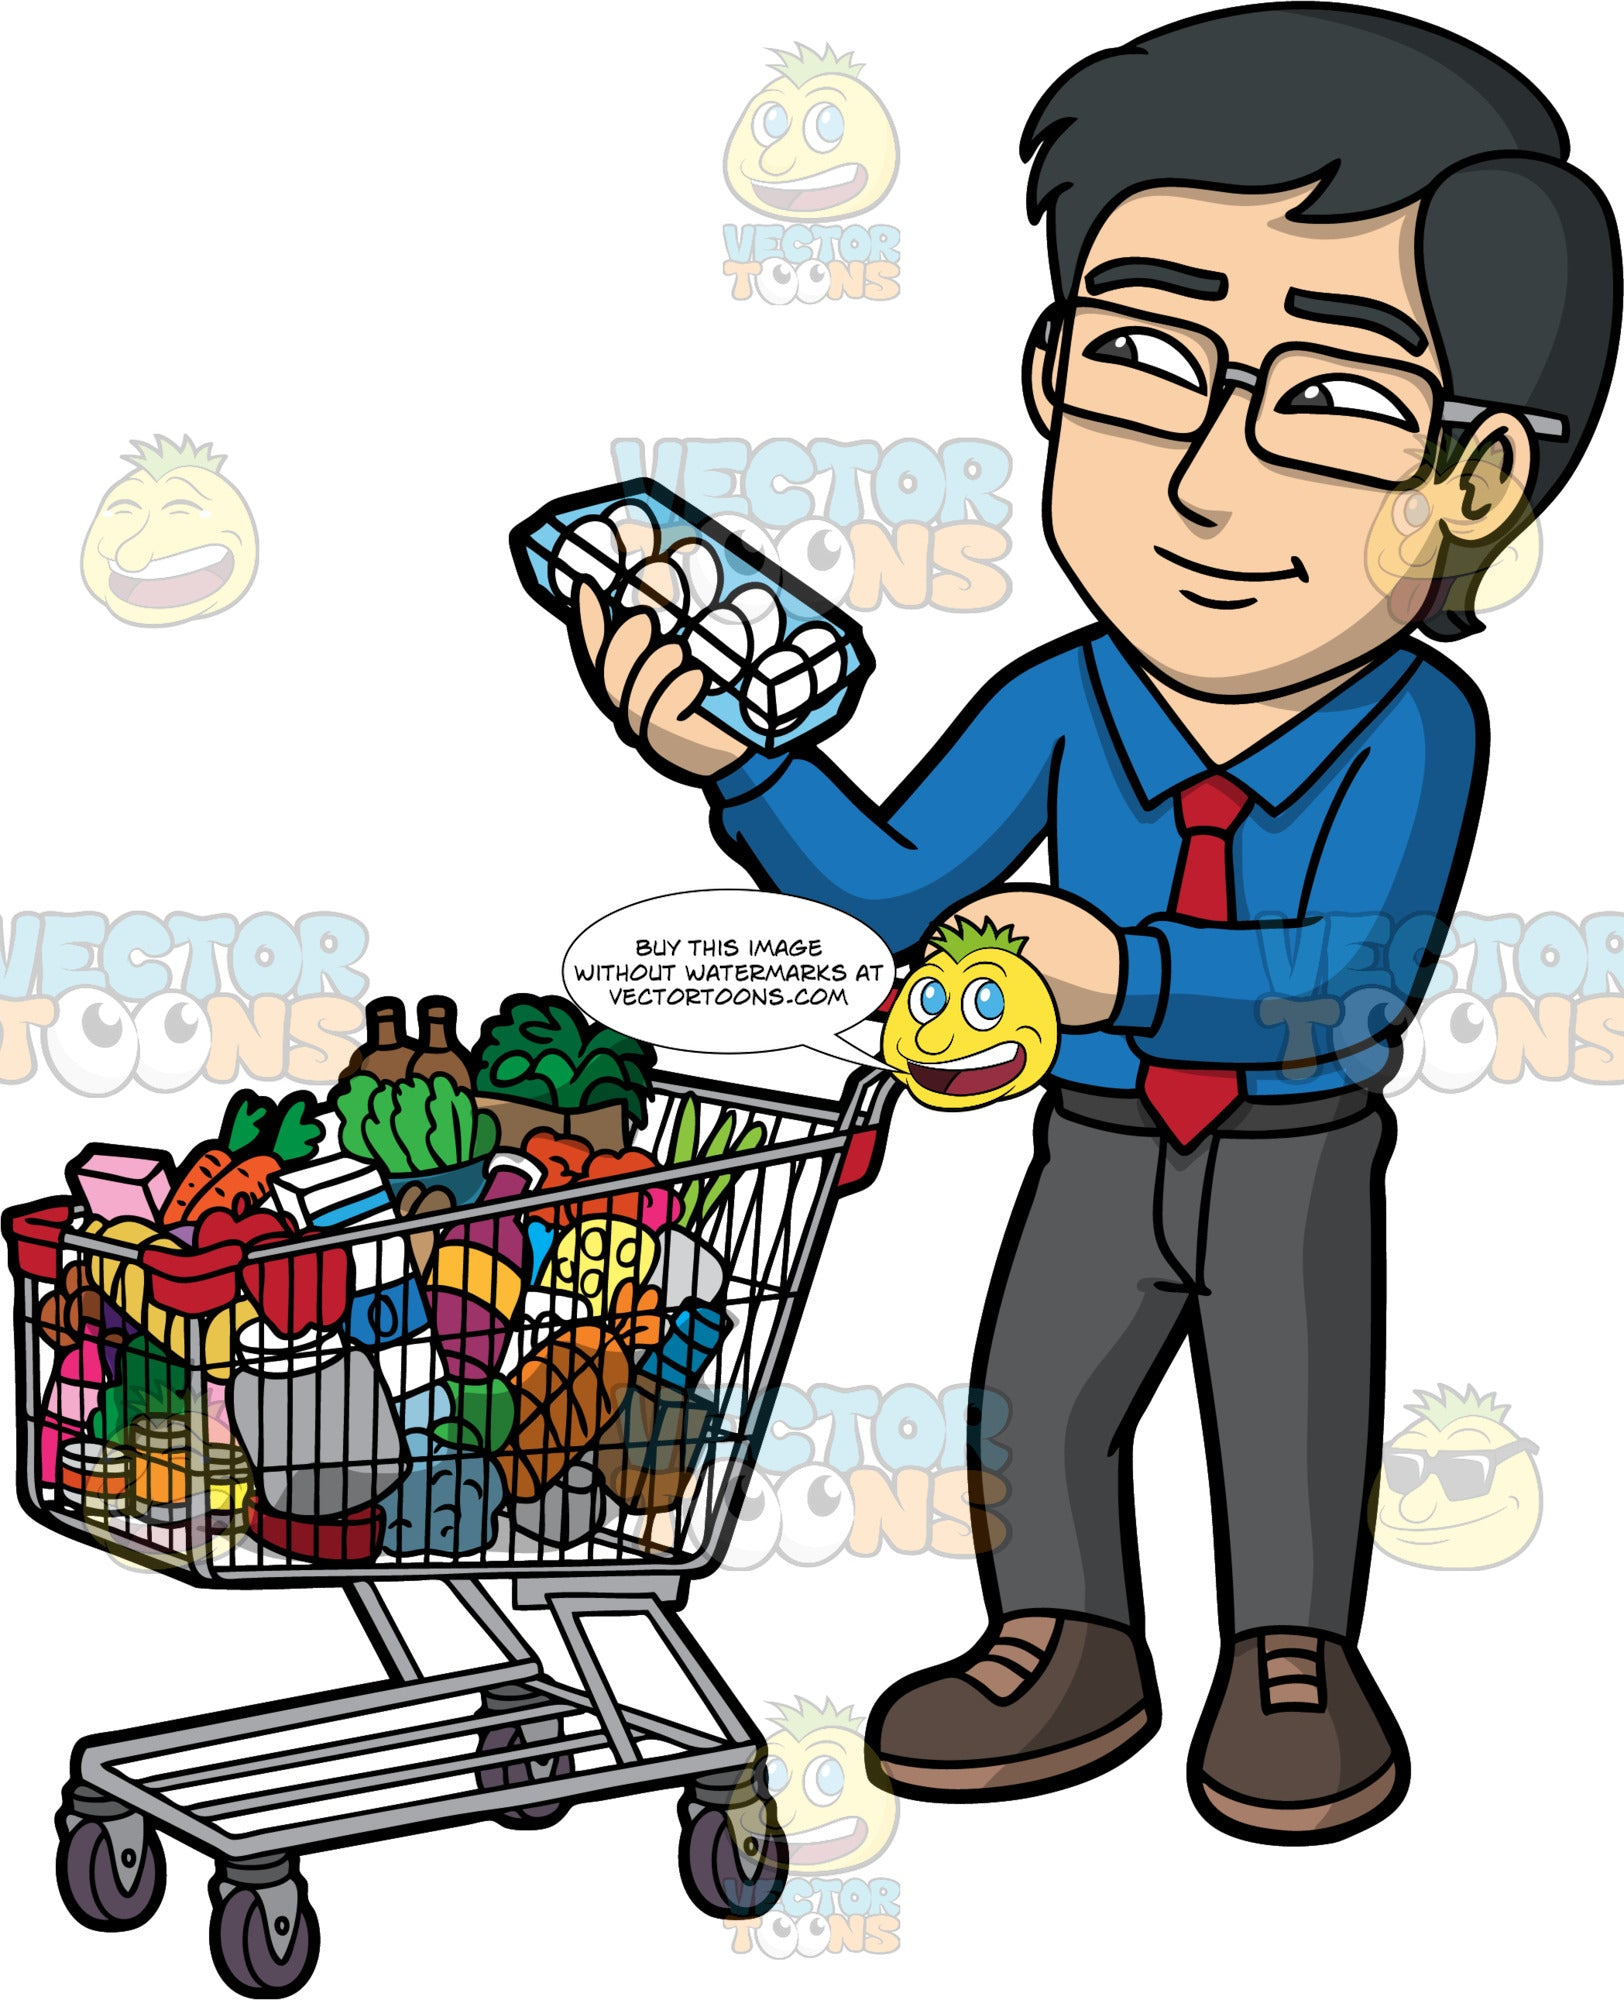 Simon Grabbing A Box Of Eggs To Put In His Shopping Cart. An Asian man wearing dark gray pants, a blue dress shirt, a red tie, brown shoes, and eyeglasses, holding a package of eggs so that he can put them in his cart filled with various groceries